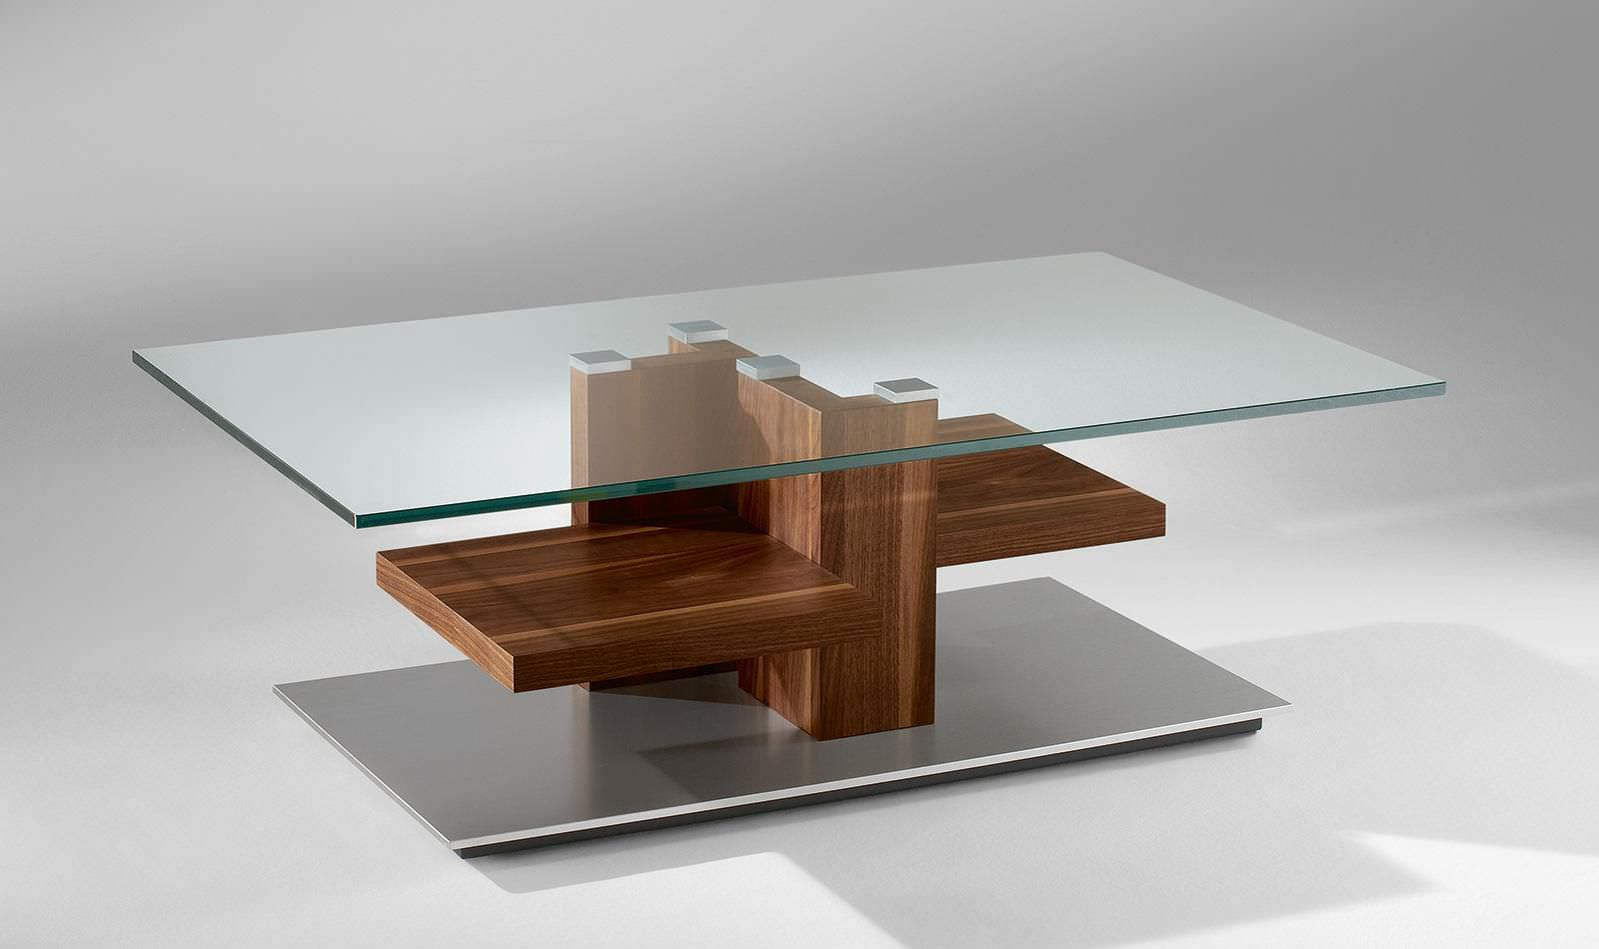 Simple Coffee Table Wood Glass Beautiful Interior Furniture Design Simple Woodworking Projects For Cub Scouts (Image 2 of 10)